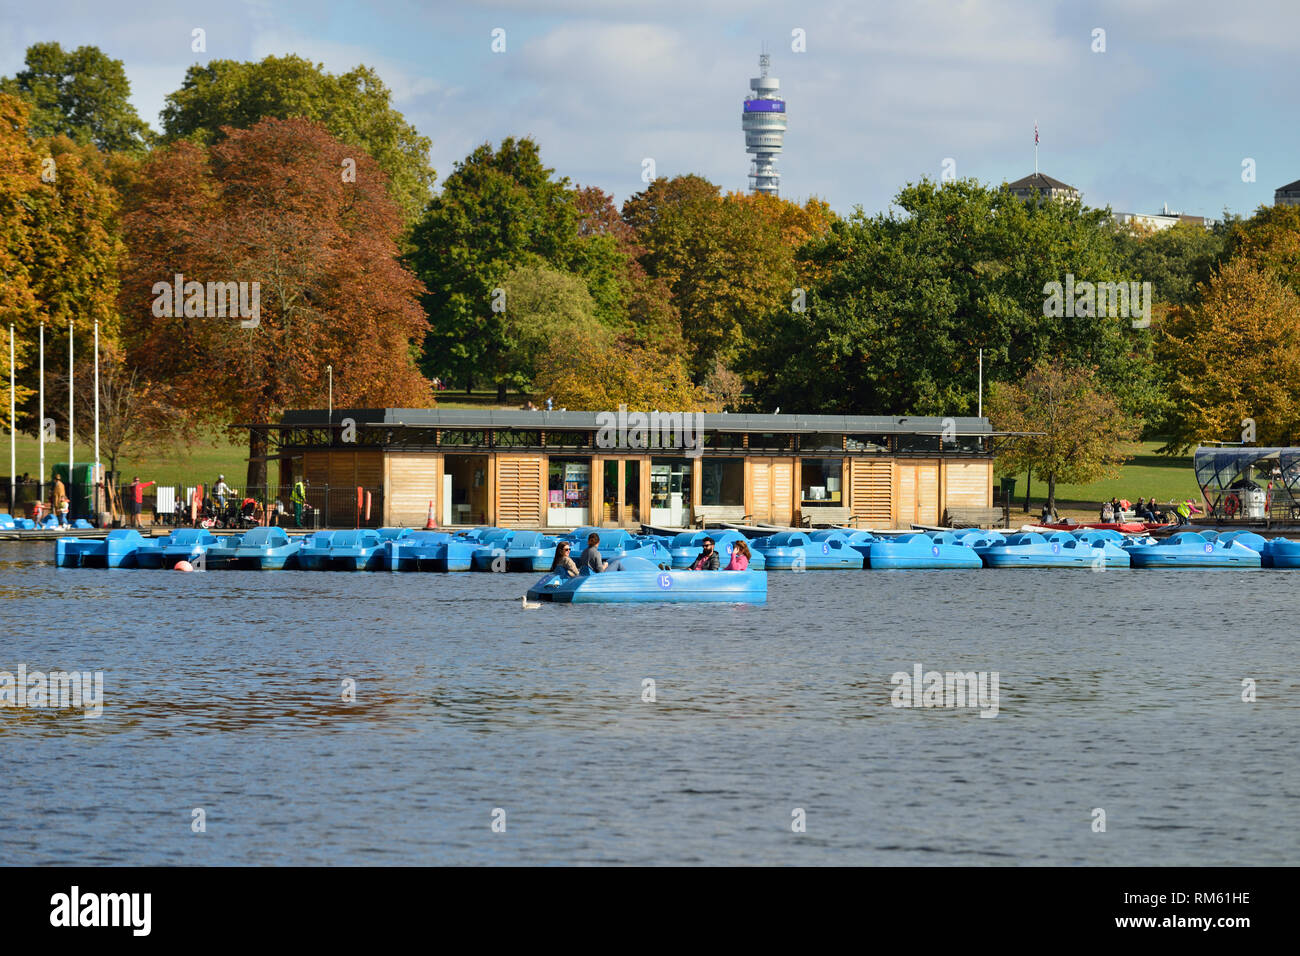 Blue leisure boats or Pedalos on the Serpentine lake, Hyde Park, London, United Kingdom - Stock Image